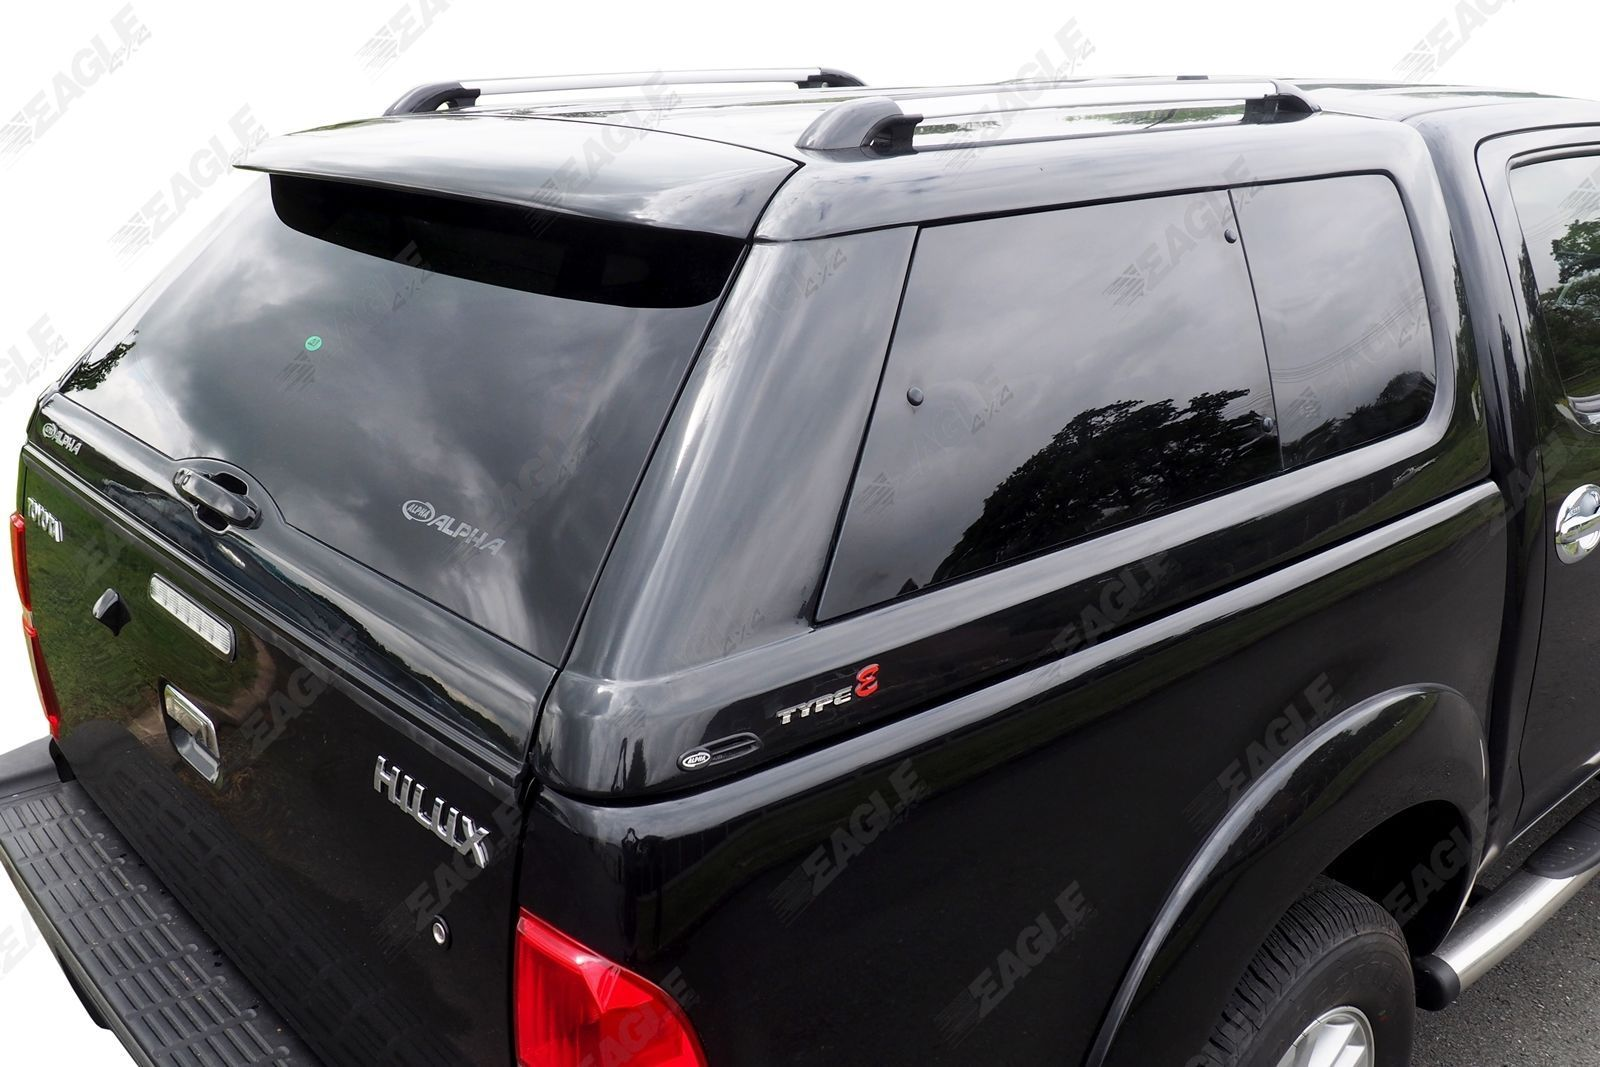 Sentinel Toyota Hilux Hardtop Canopy - Alpha Type E - Hard Top with Central Locking & Toyota Hilux Hardtop Canopy - Alpha Type E - Hard Top with Central ...